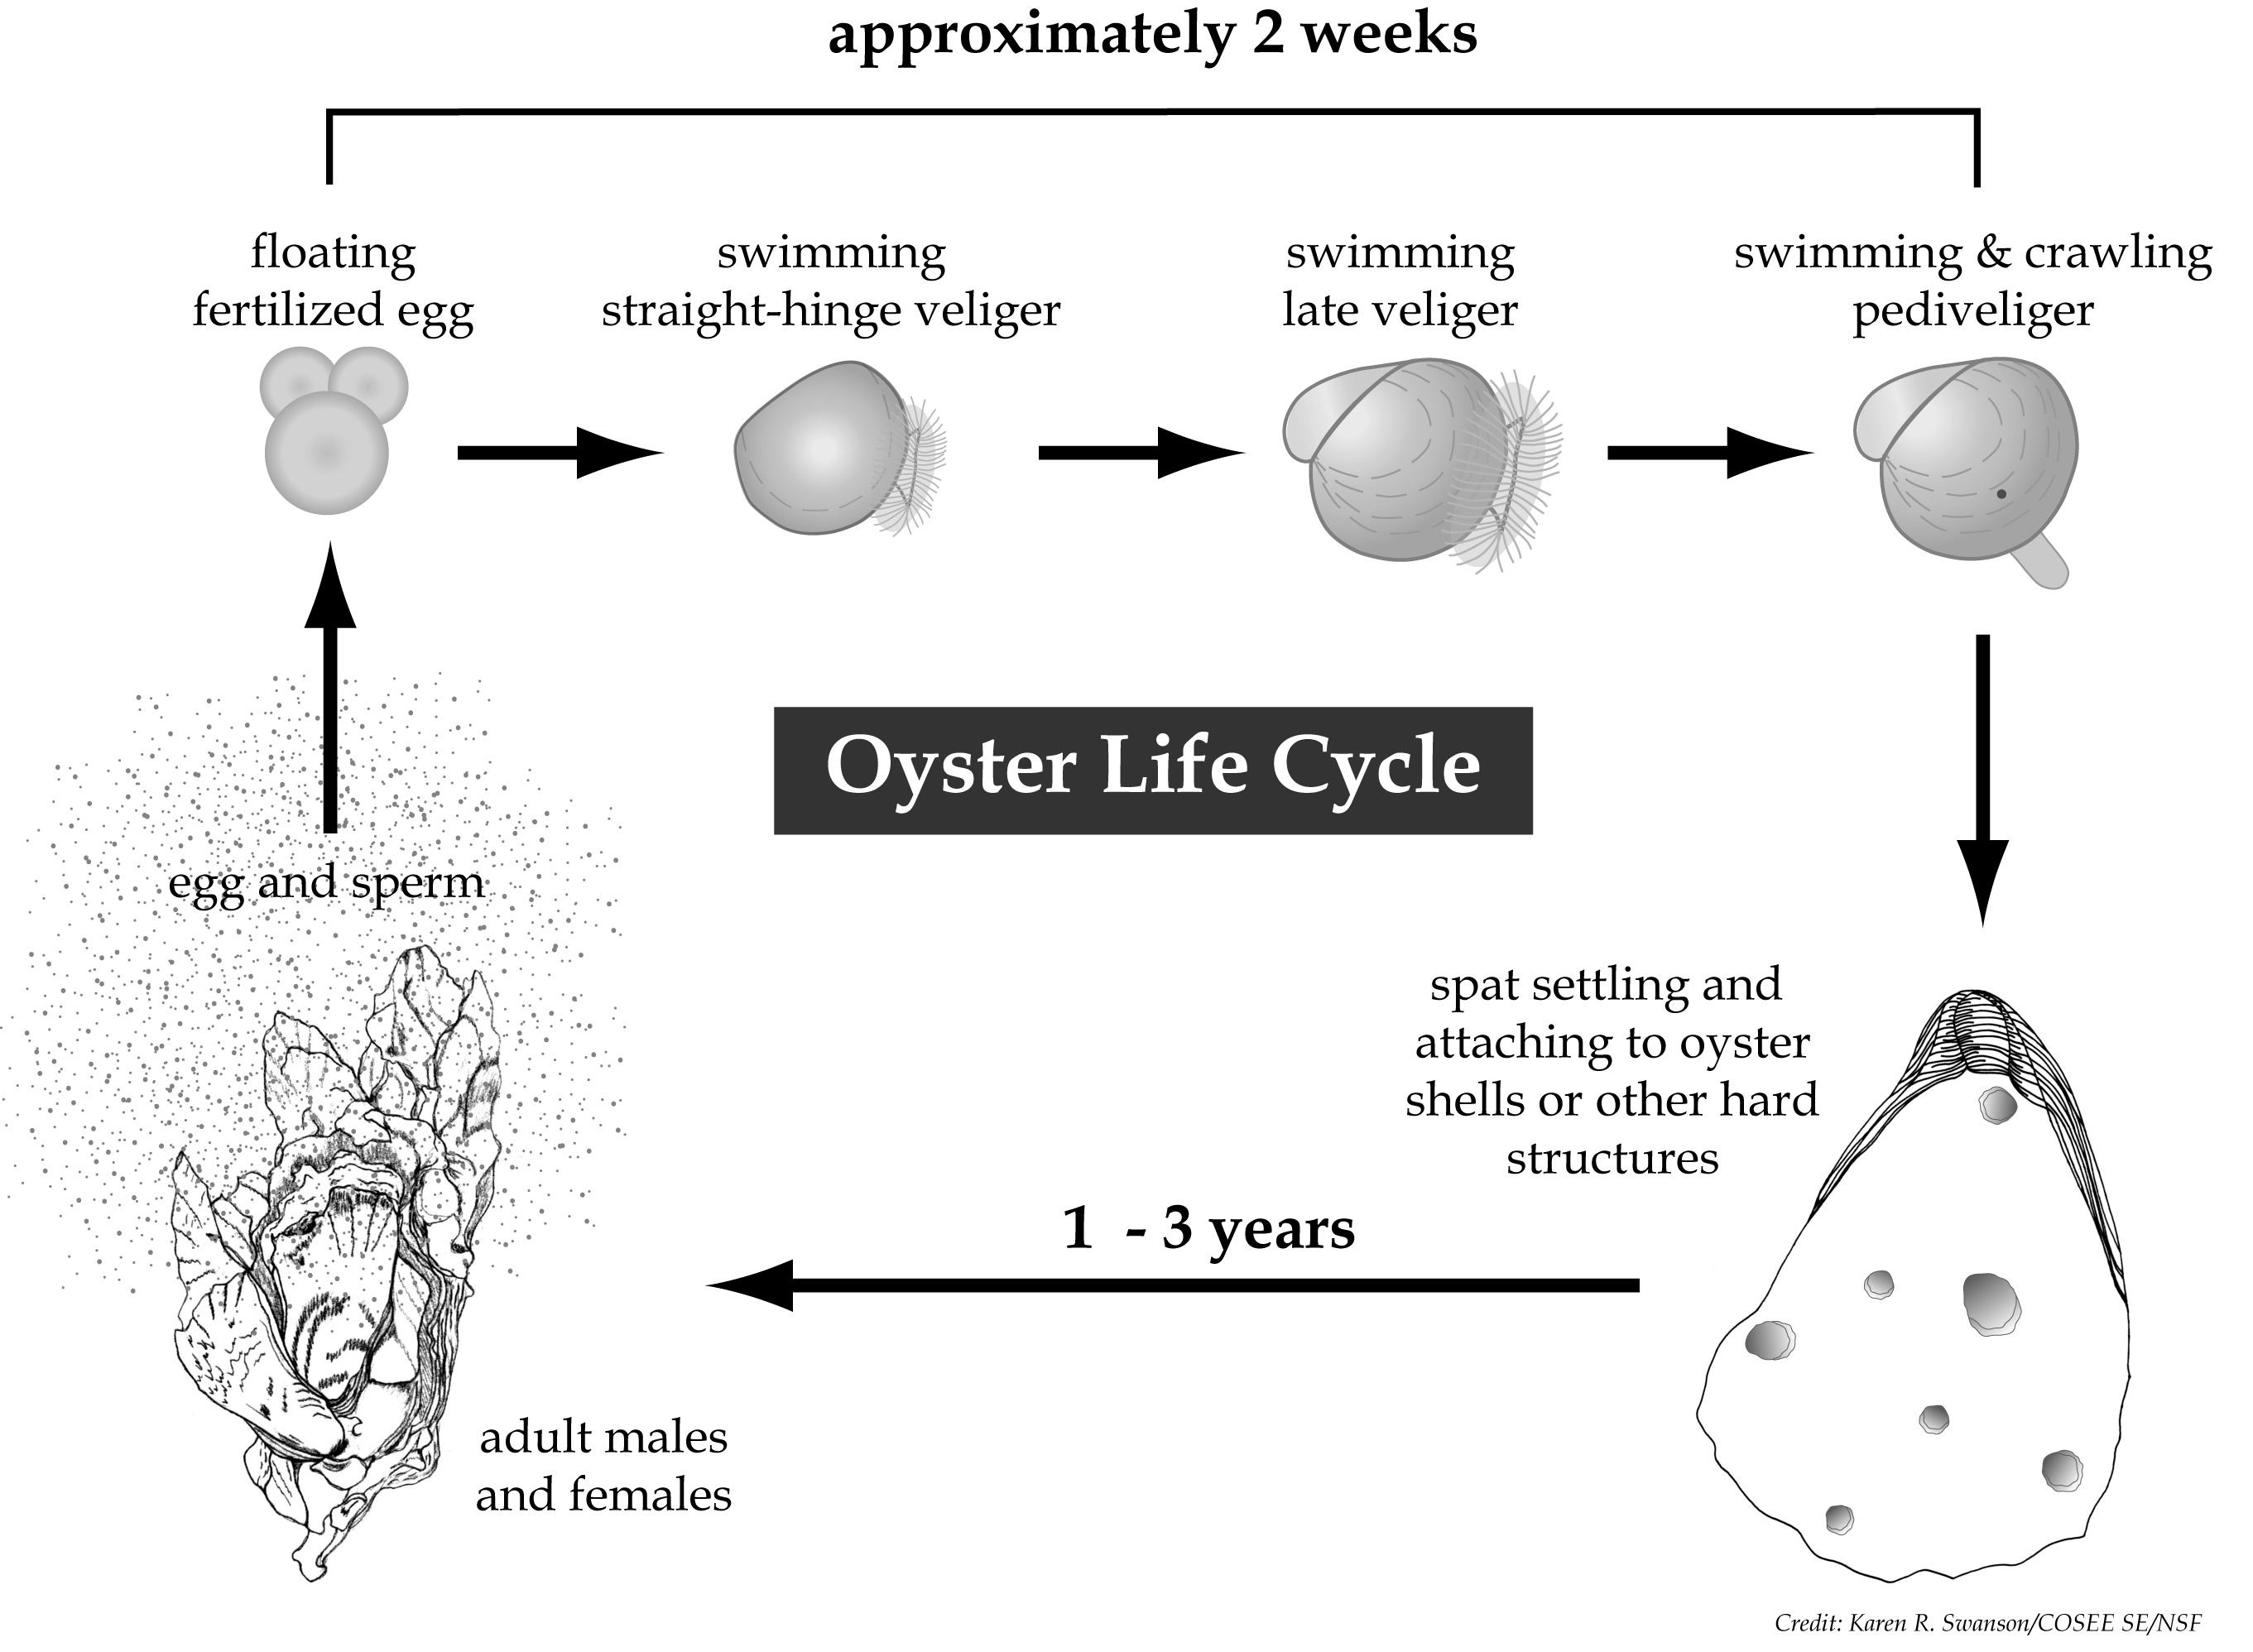 Figure of the oyster life cycle, from egg to veliger larva to pediveliger stage to attached juvenile (spat) to adult, and back to egg.